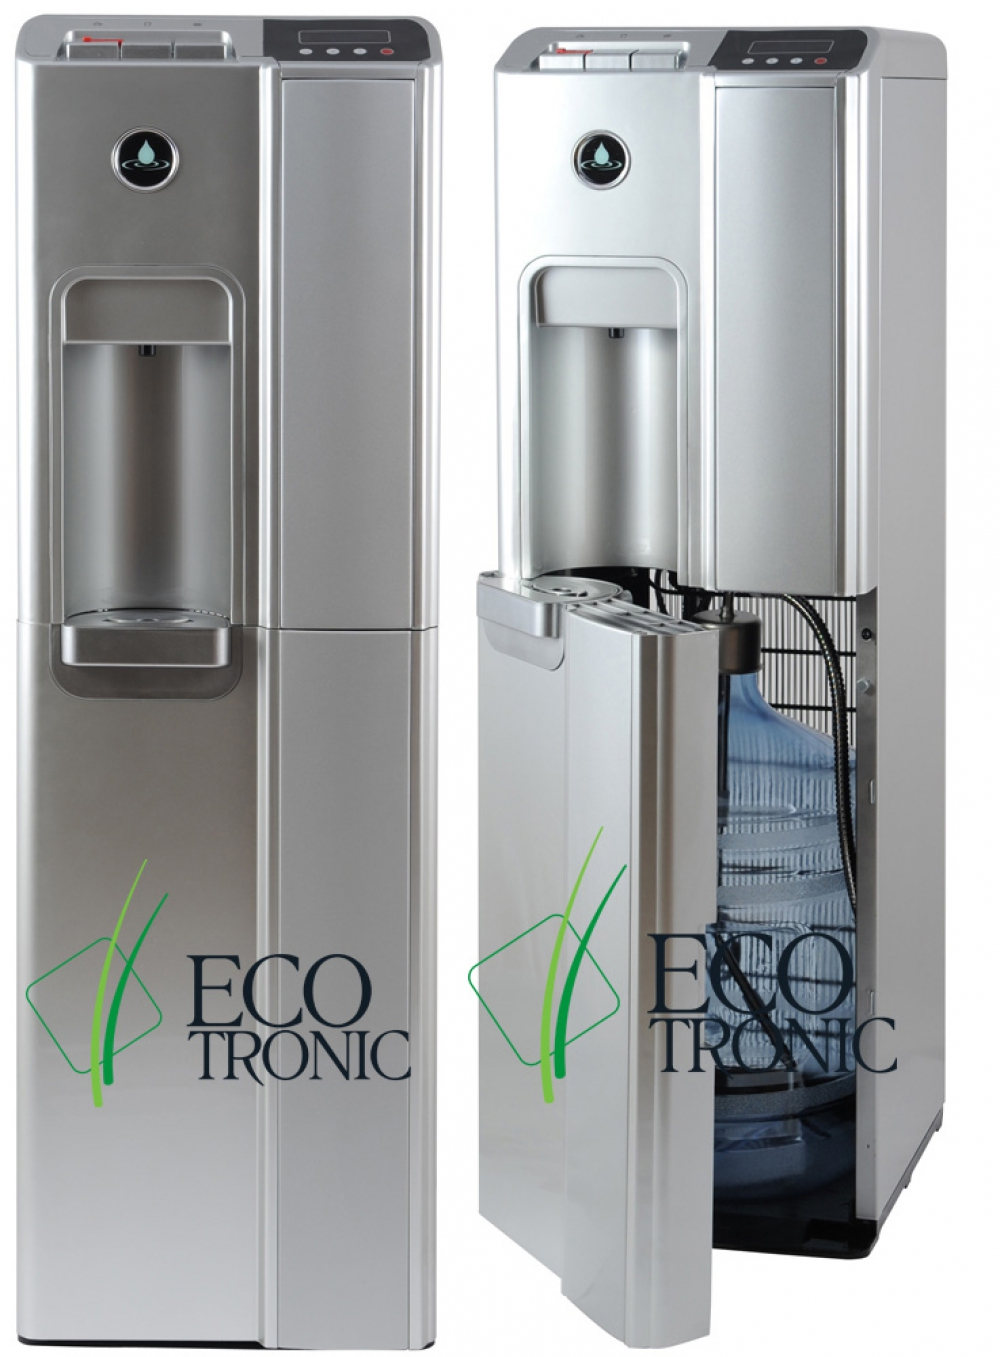 Ecotronic P7-LX silver